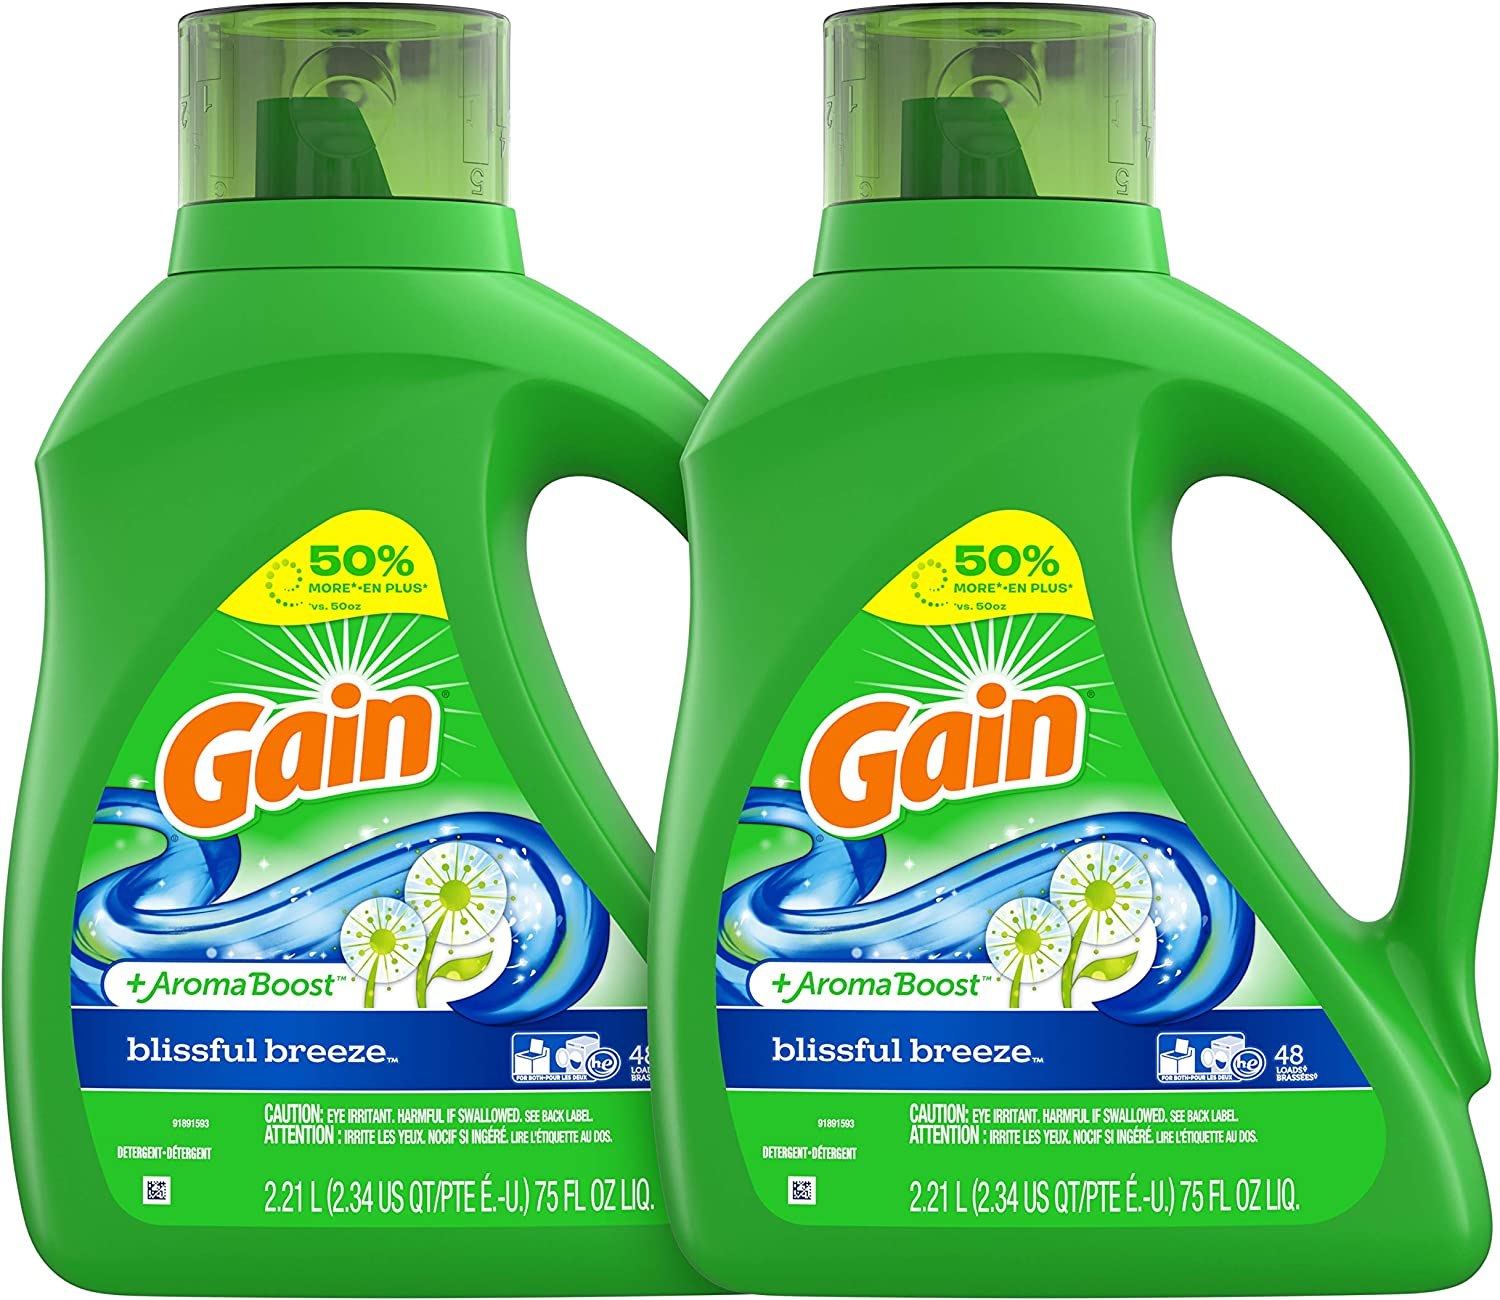 Gain Liquid Laundry Detergent, Blissful Breeze, 2 Count, 75 fl oz Each, 96 Total Loads